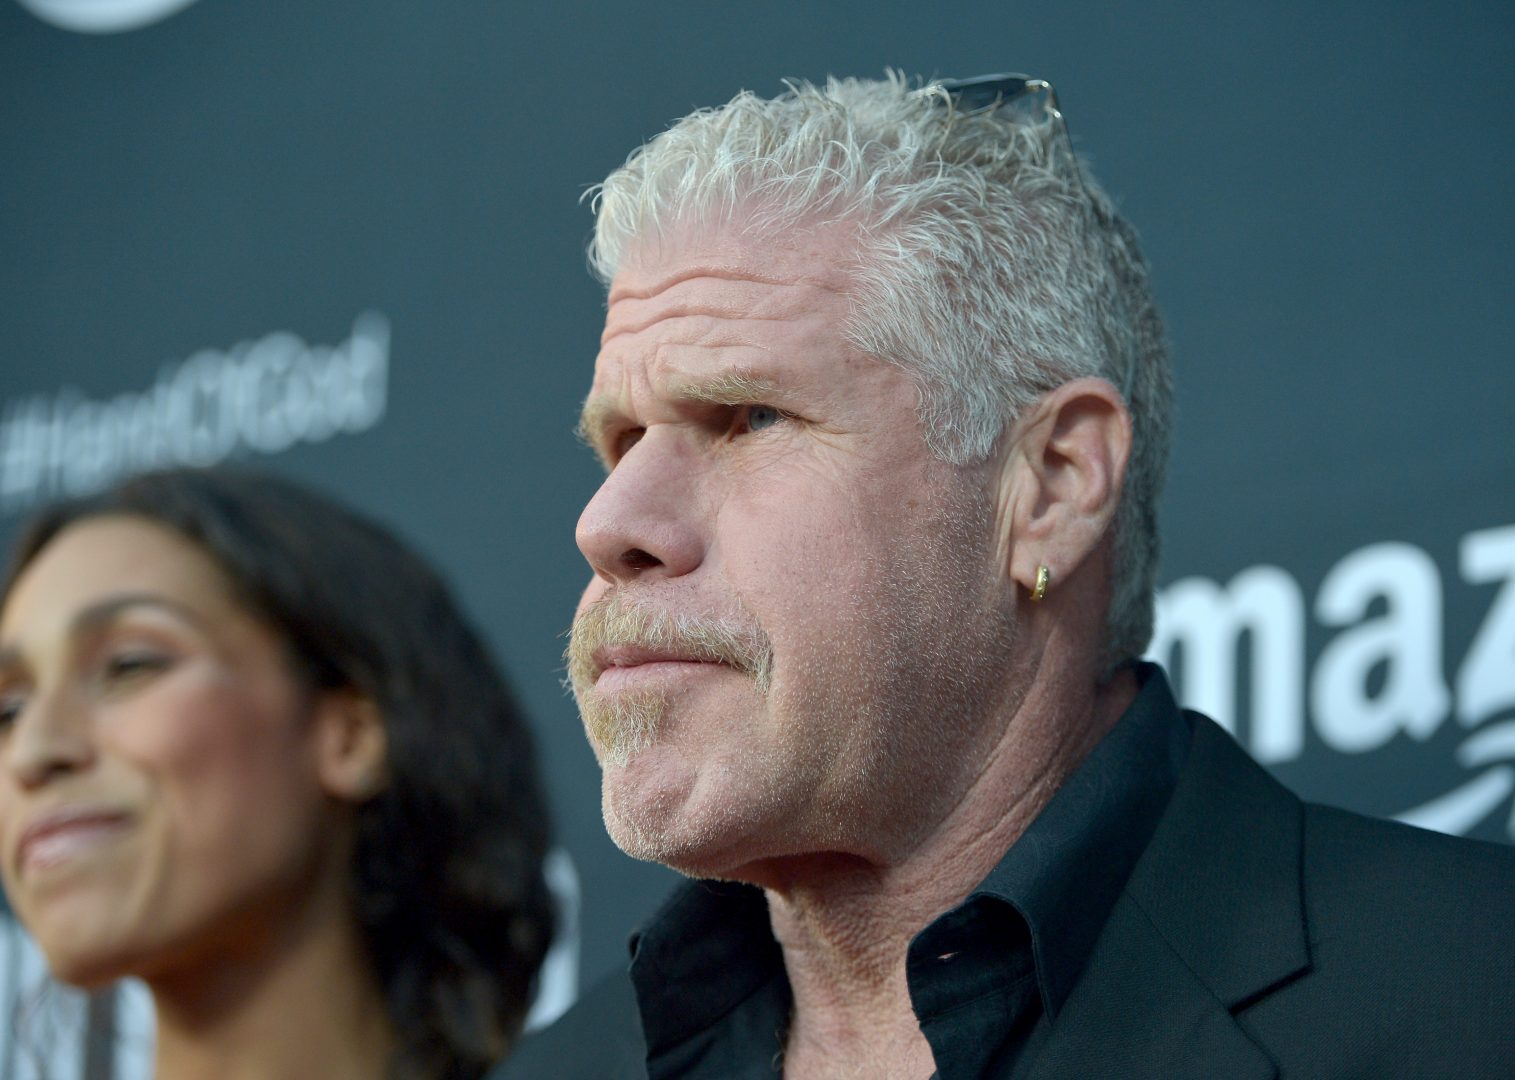 Ron Perlmann posing for Hand of God.